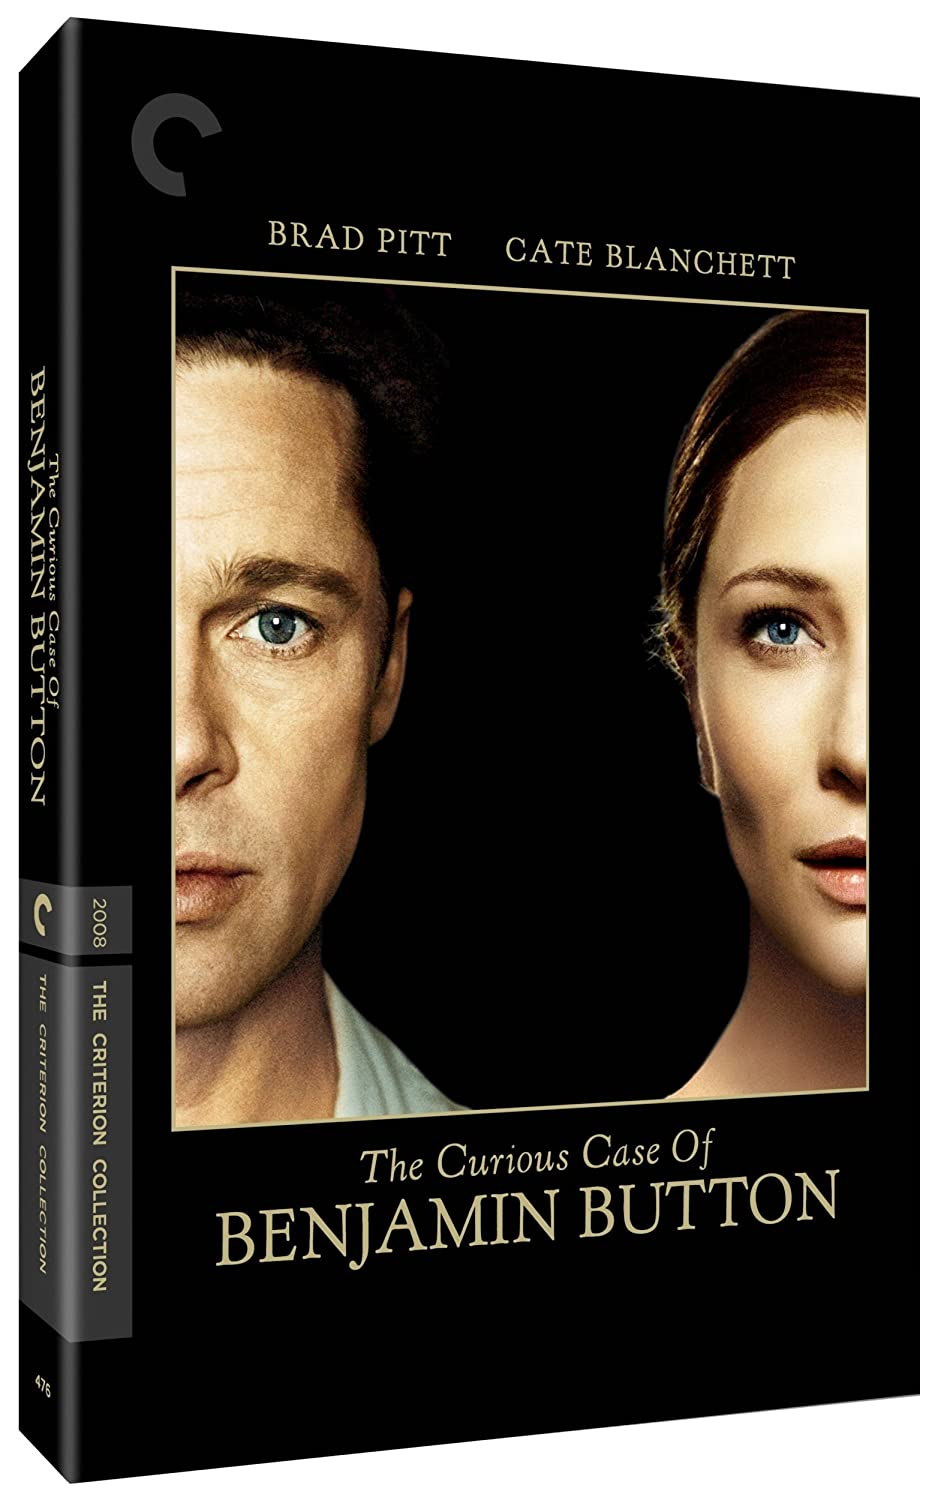 com the curious case of benjamin button the criterion com the curious case of benjamin button the criterion collection brad pitt cate blanchett julia ormond tilda swinton tom everett